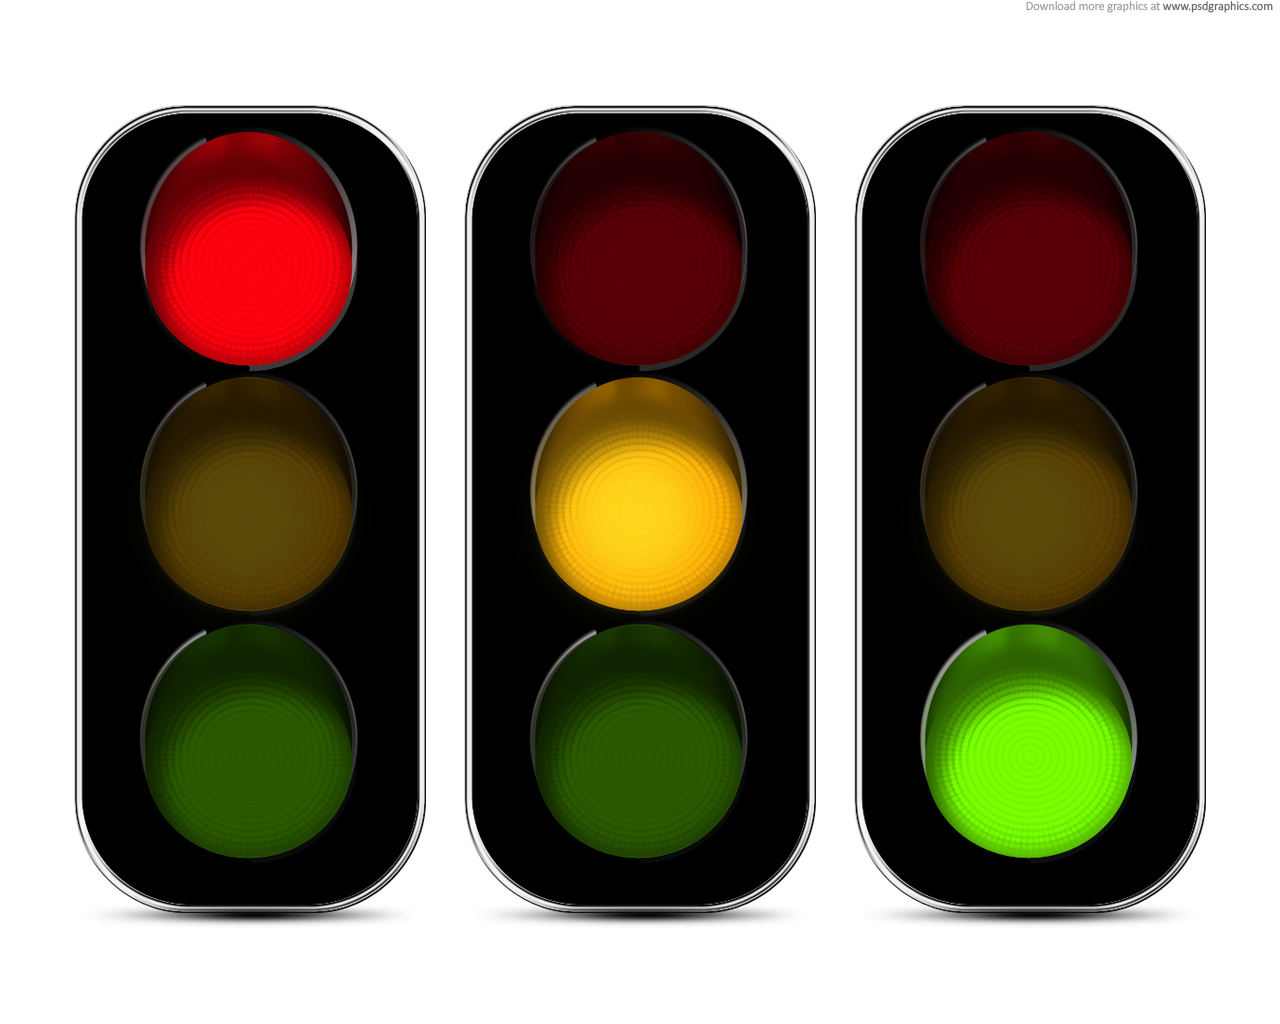 Green stoplight clipart clipart transparent library Free Stoplight Pictures, Download Free Clip Art, Free Clip Art on ... clipart transparent library